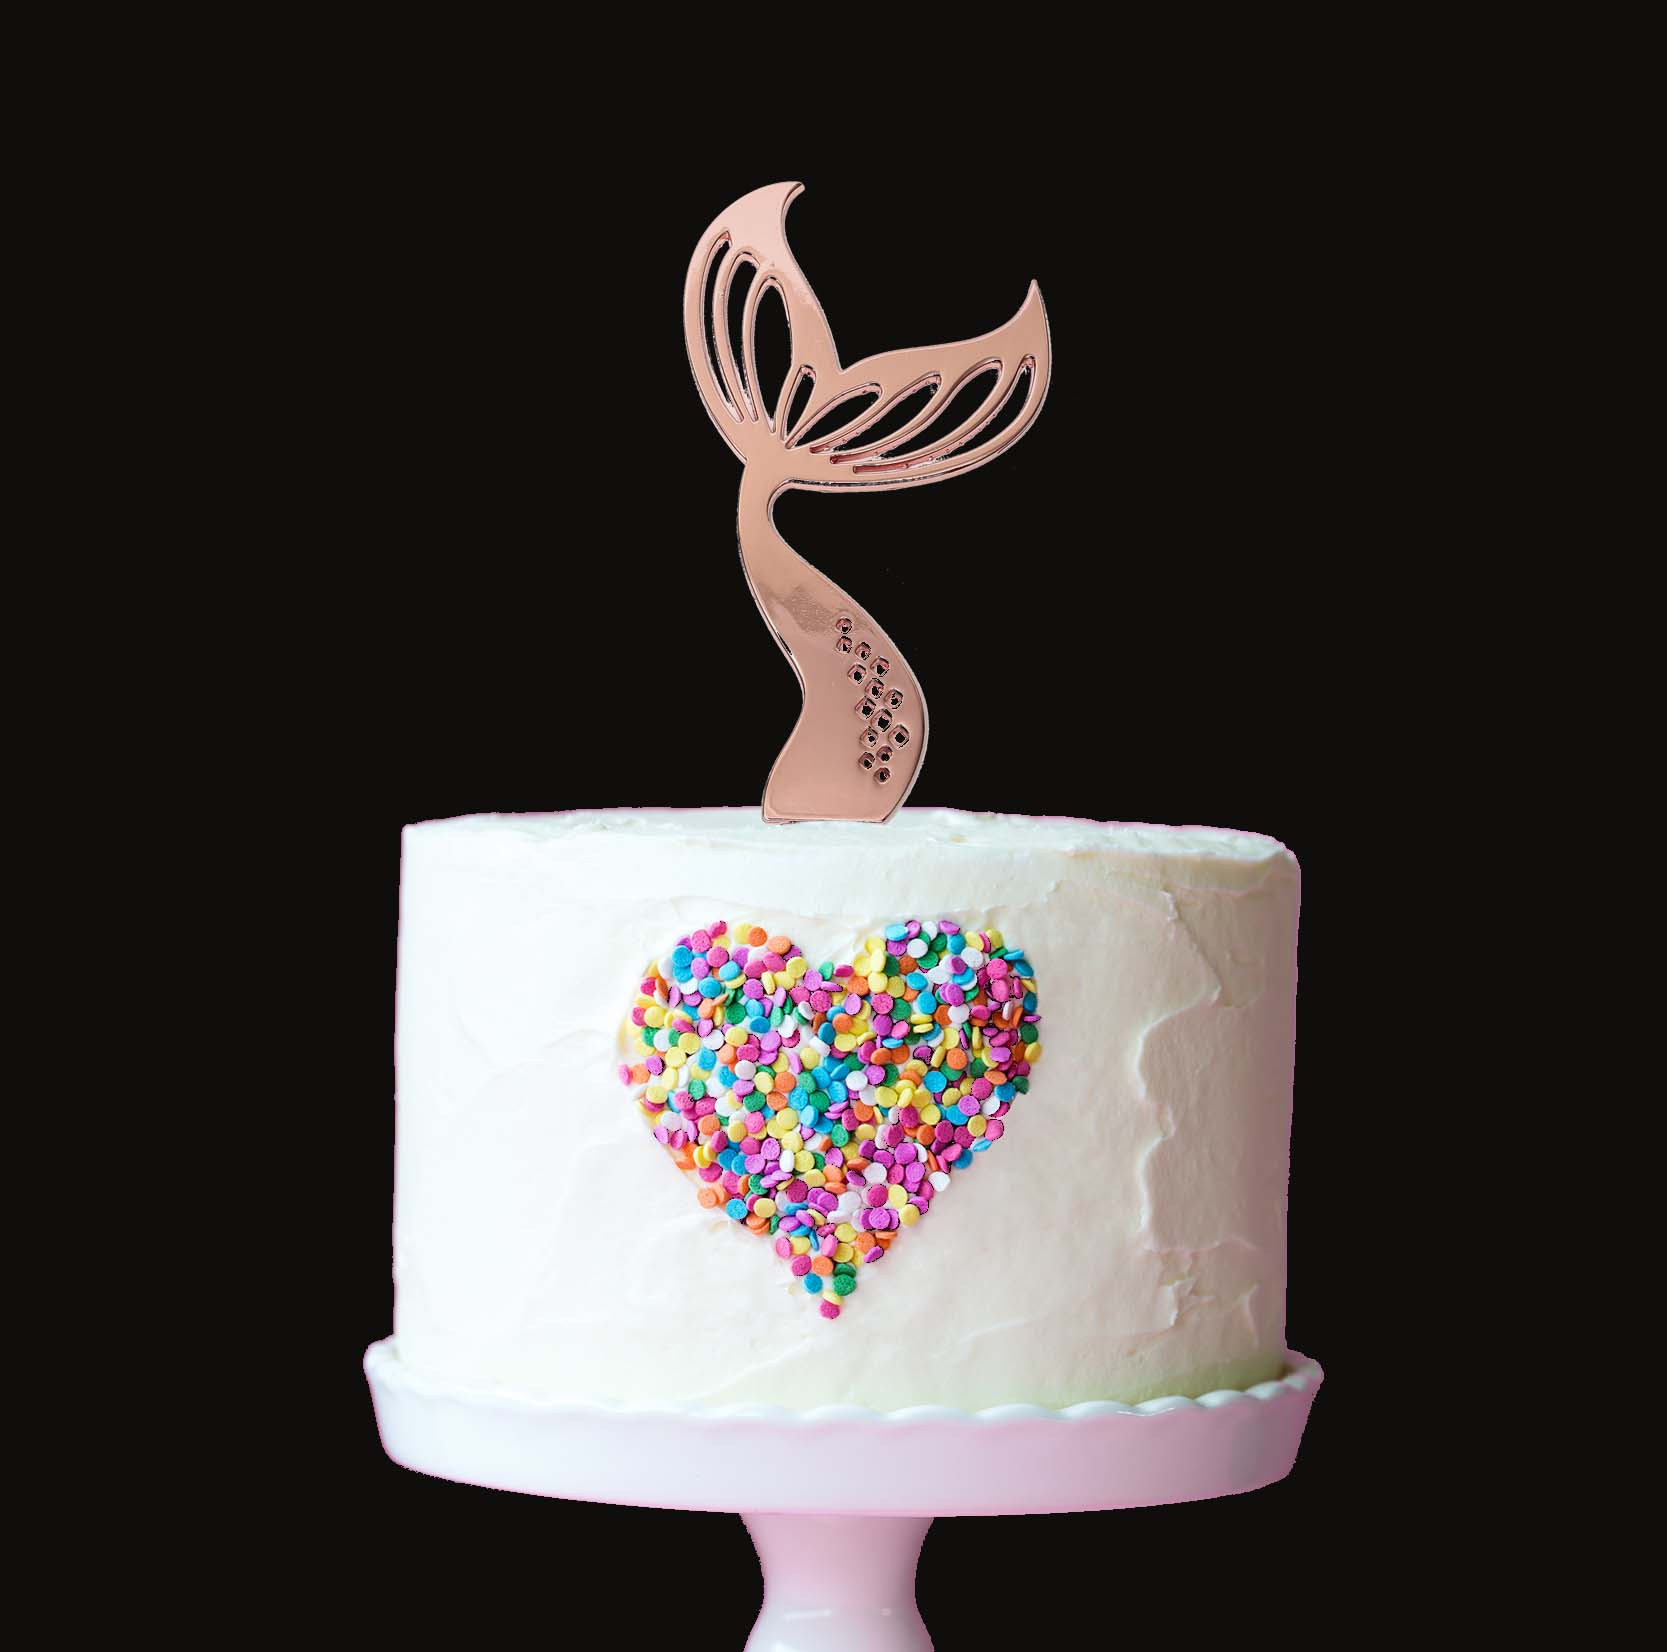 ROSE GOLD Plated Cake Topper - MERMAID TAIL